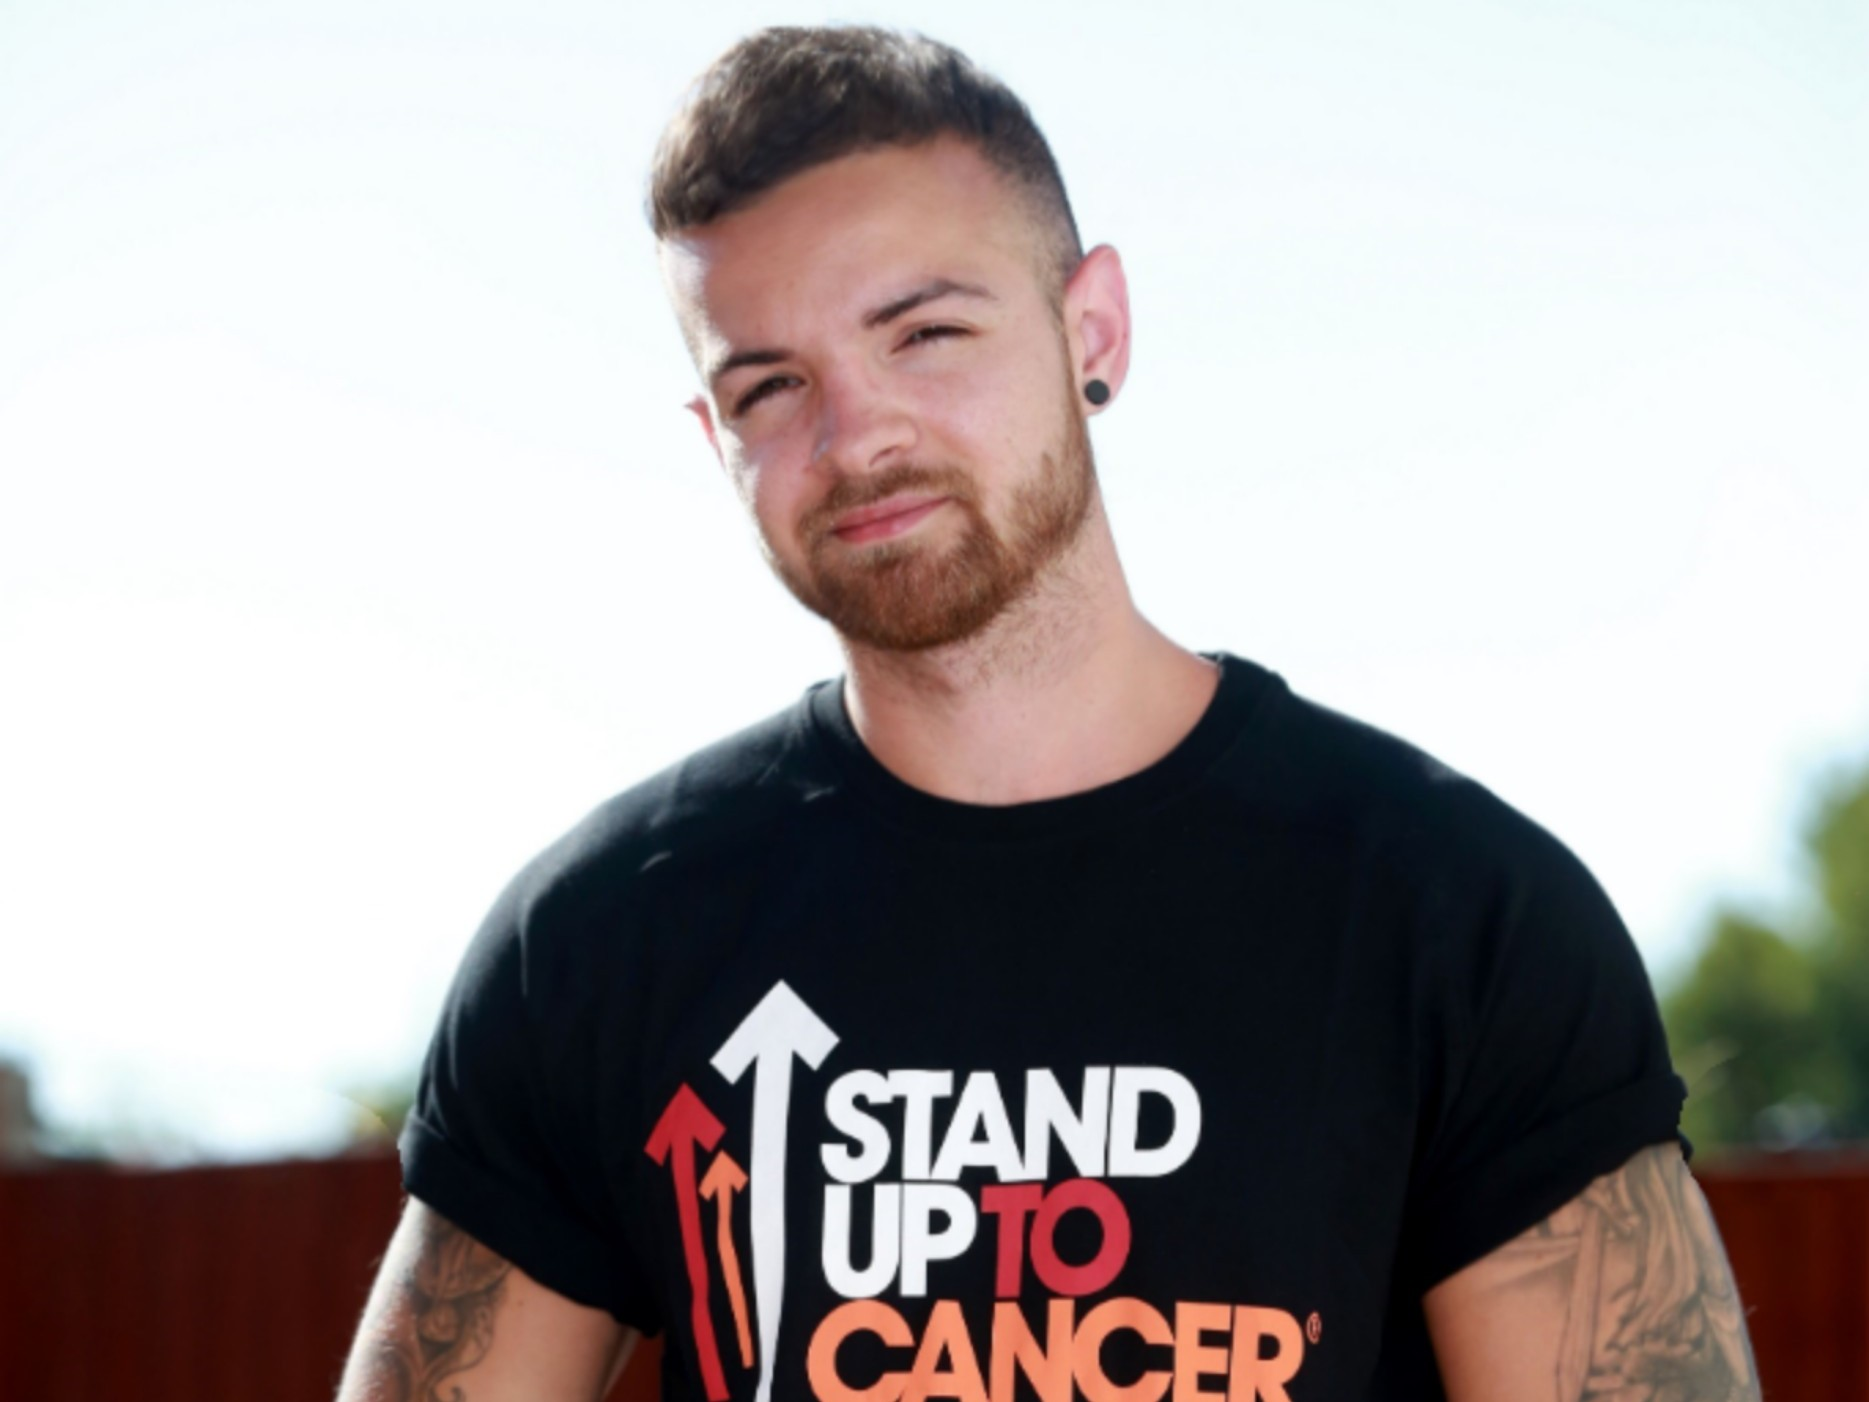 Connor Cunningham-Bladon, who was diagnosed with bladder cancer